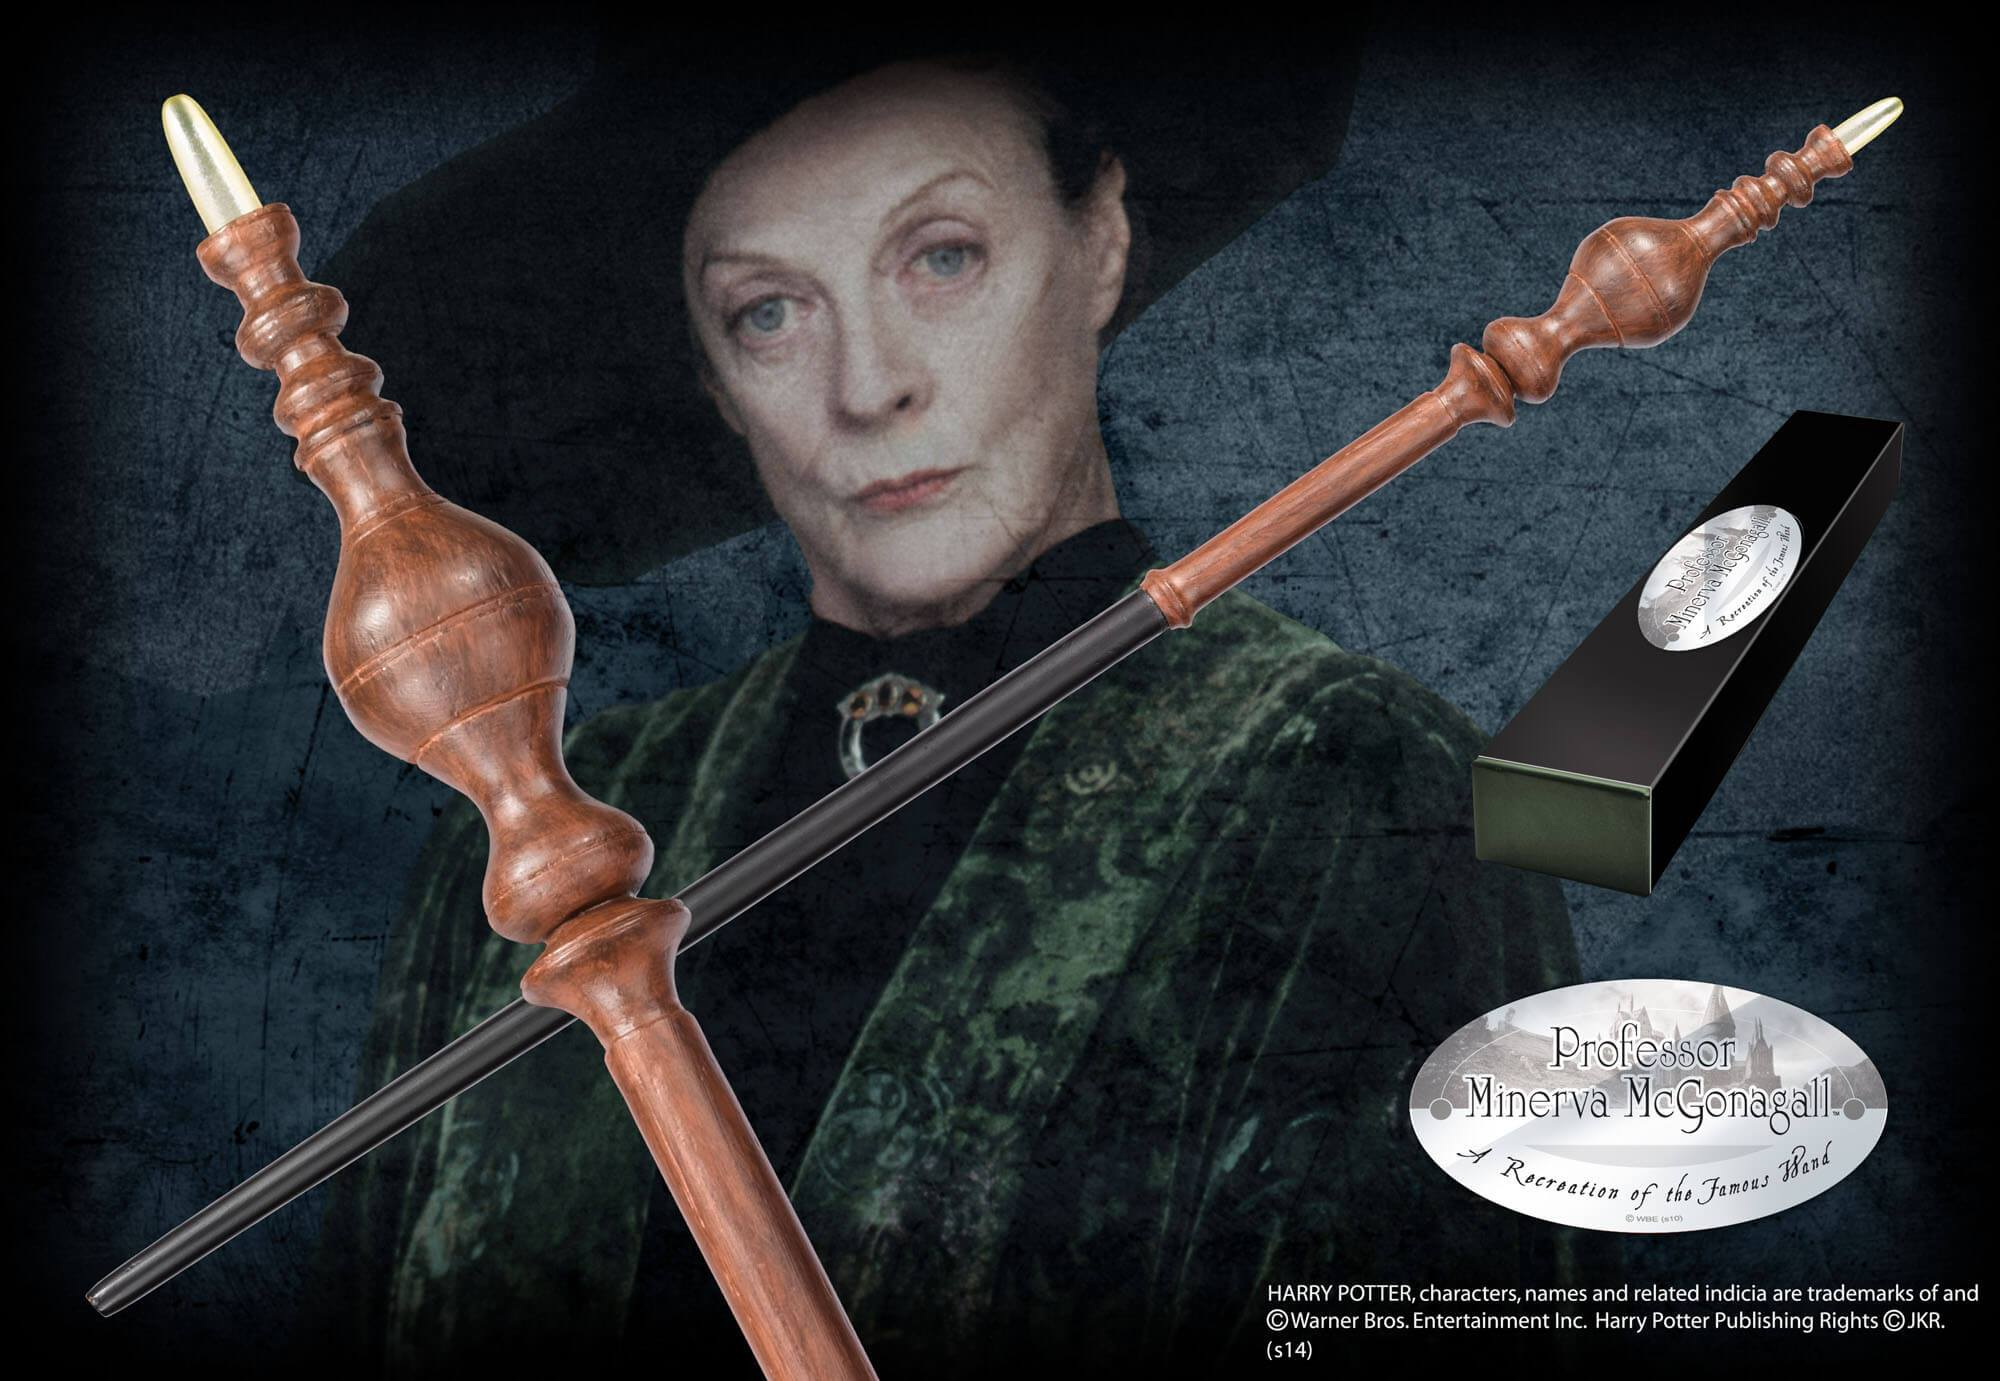 BAGUETTE COLLECTOR PROFESSEUR MC GONAGALL